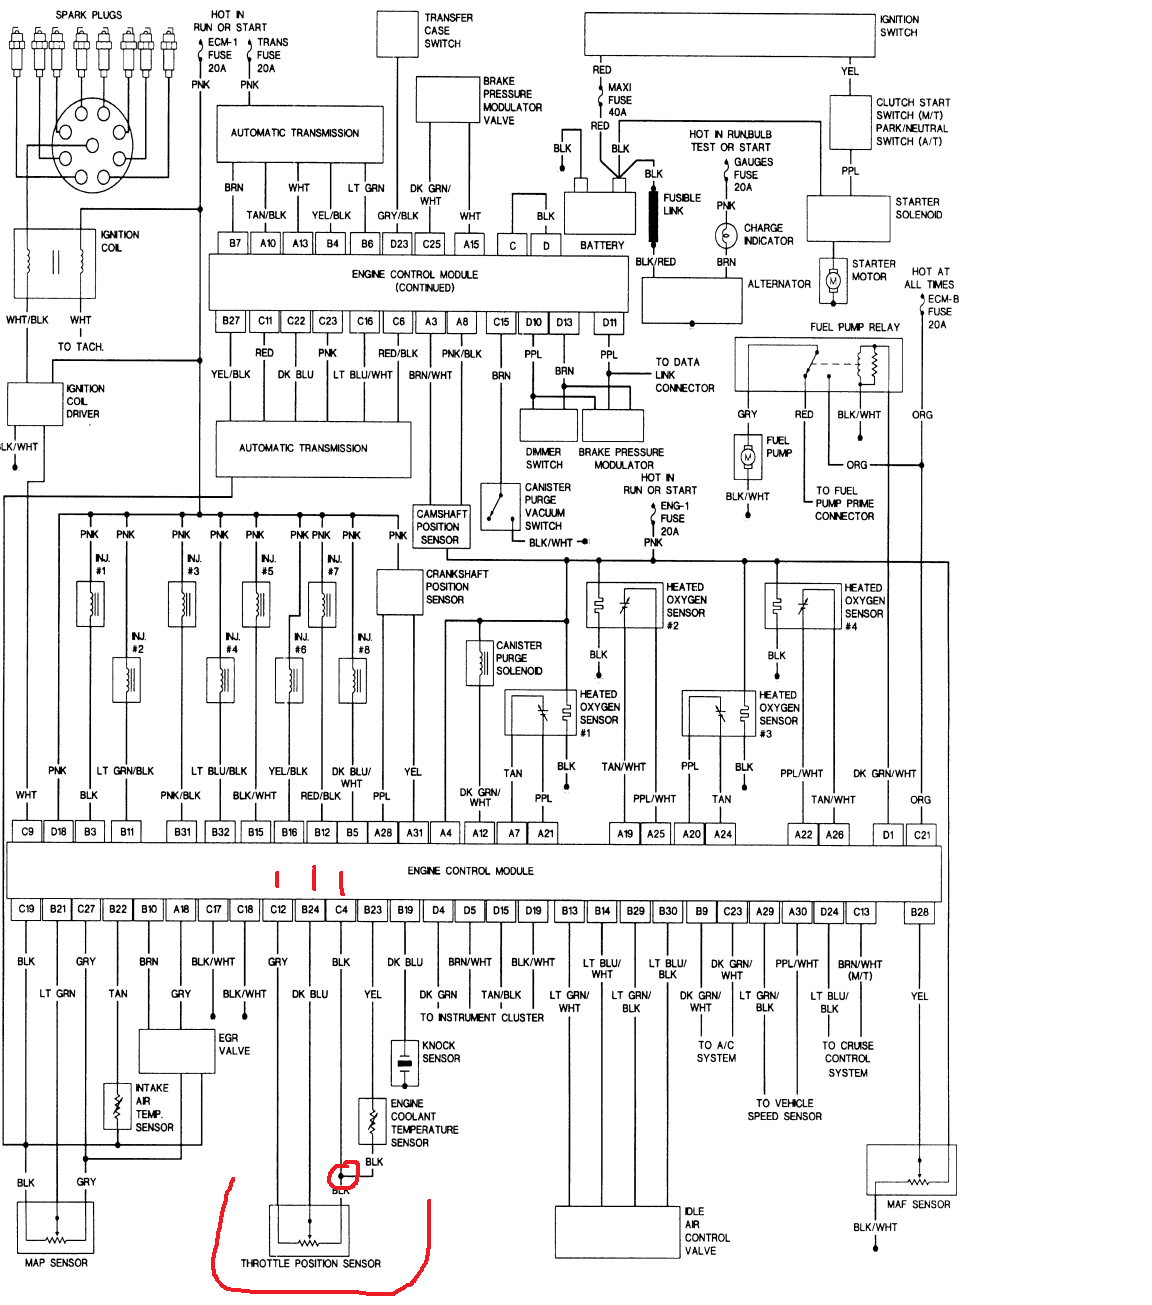 hight resolution of here s the specific diagram for my vehicle from autozone